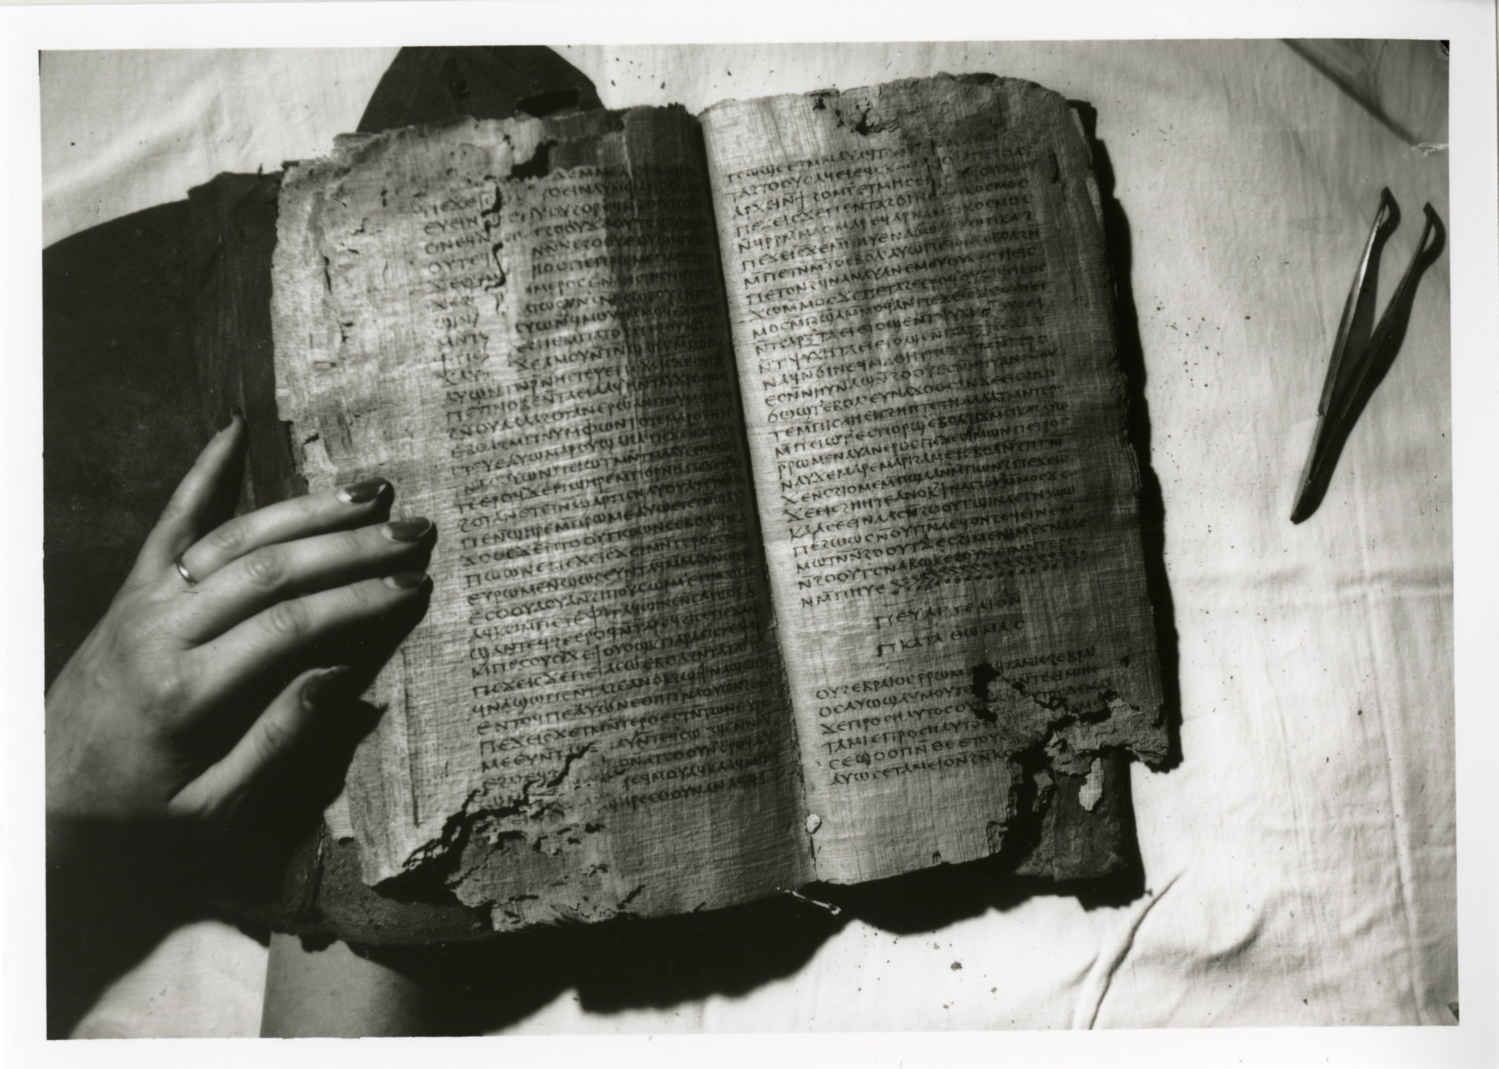 Gnostic Texts and Dead Sea Scrolls Reveal Christianity's ...